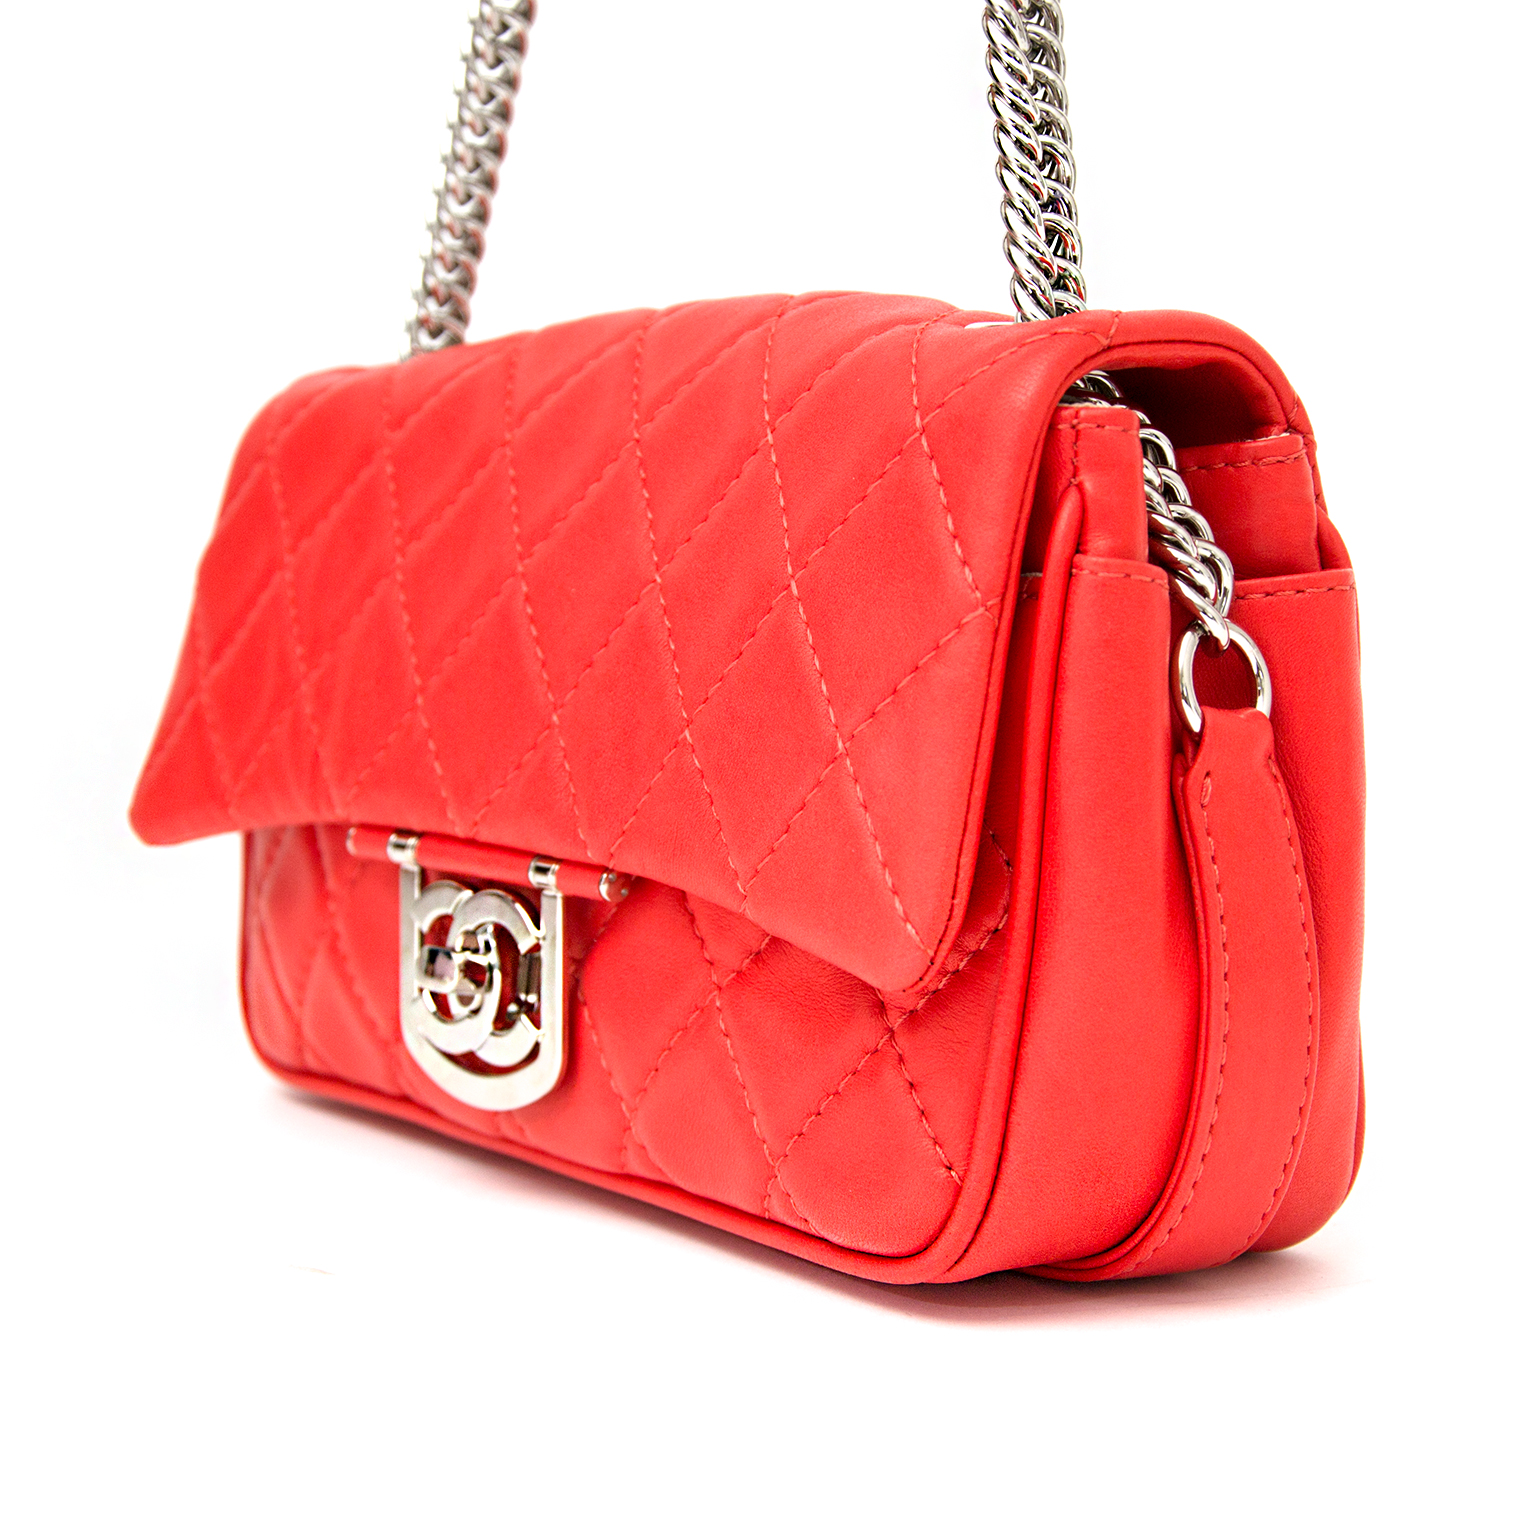 523cfc620be9 ... labellov.com shop safe online at the best price chanel icons red flap  bag like new webshop www